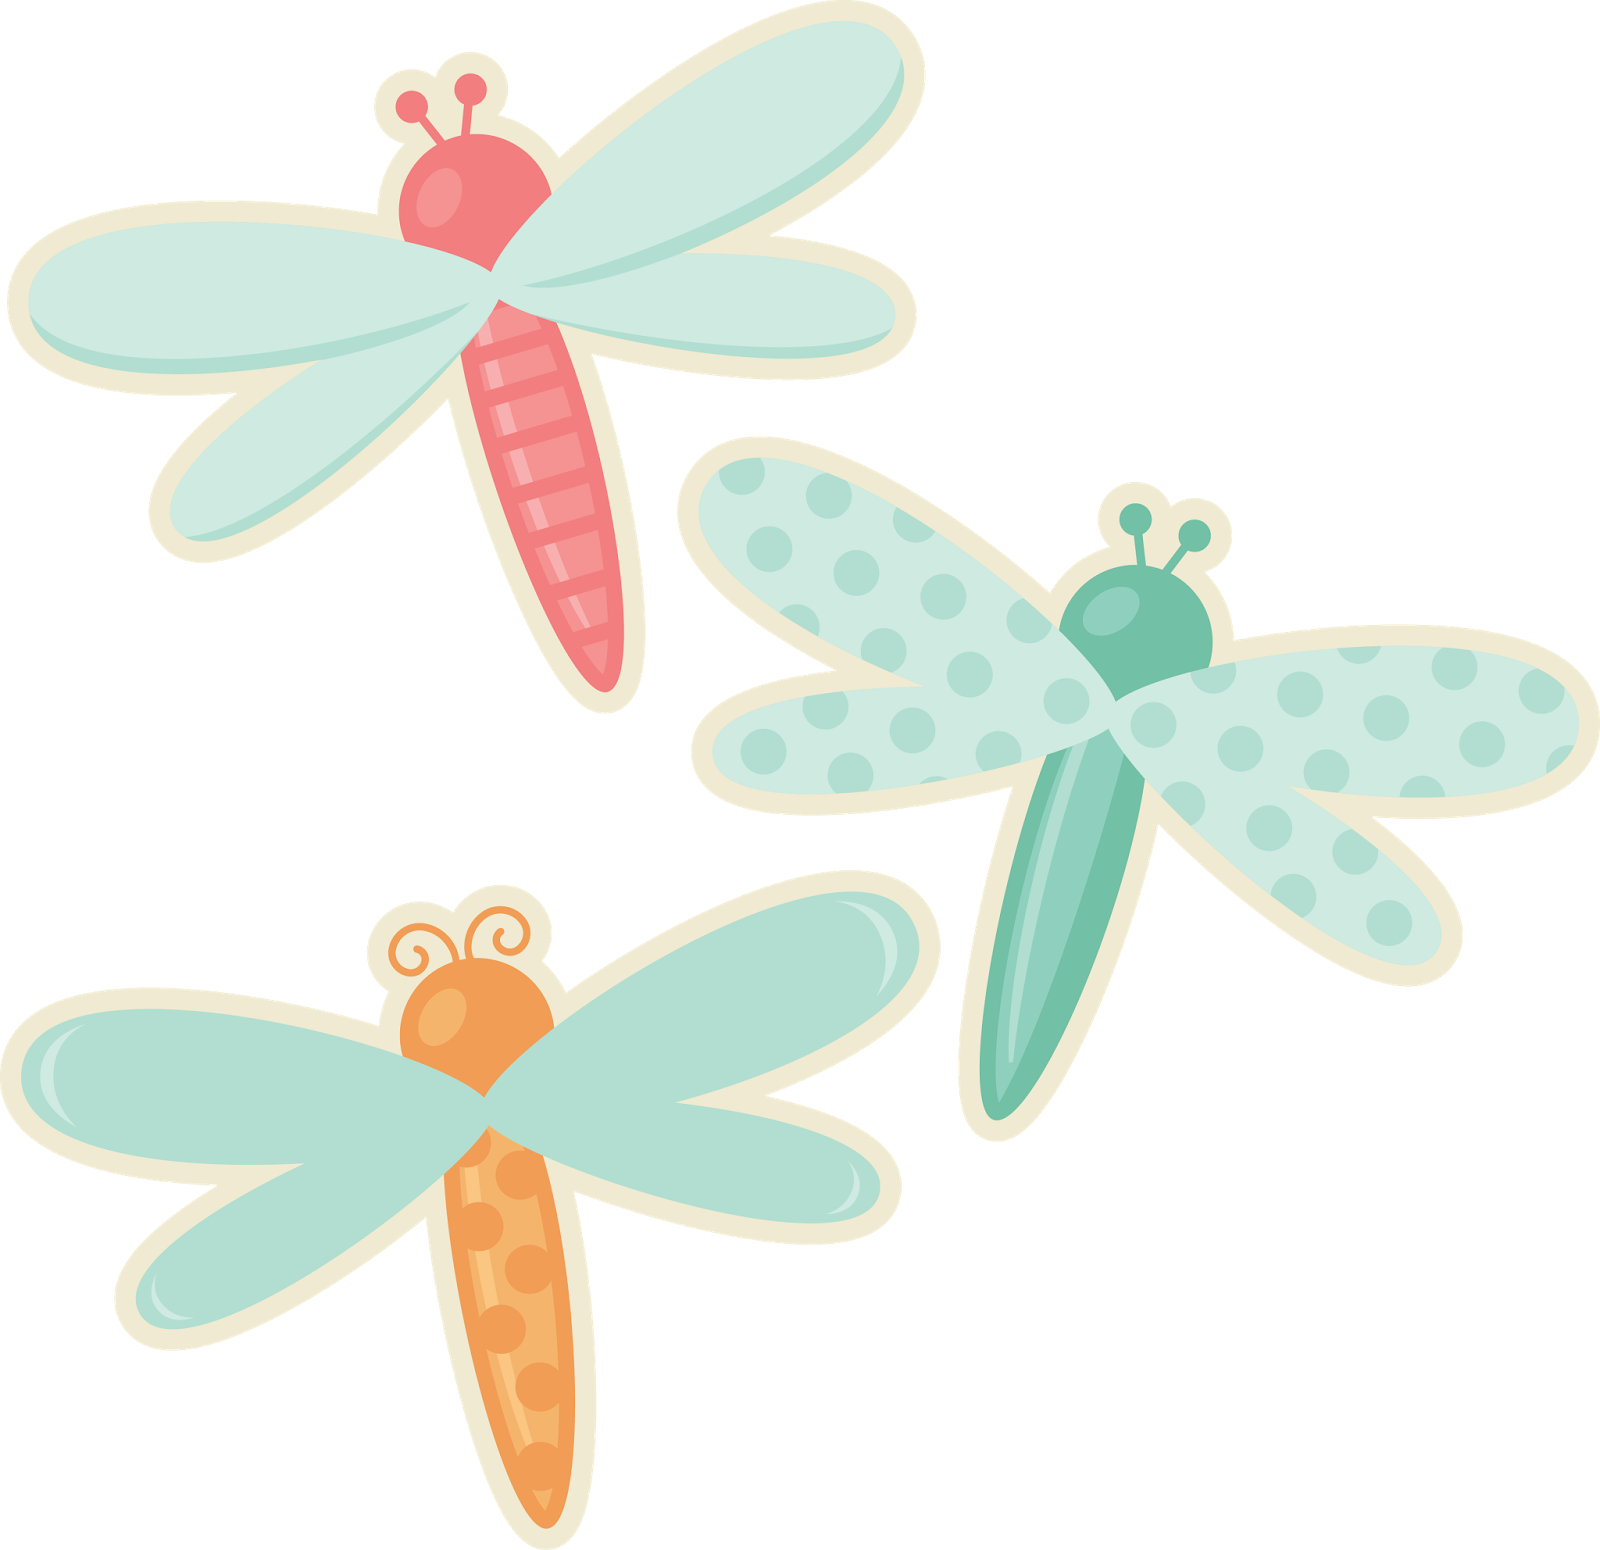 Dragonfly clipart creative. Miss kate cuttables what